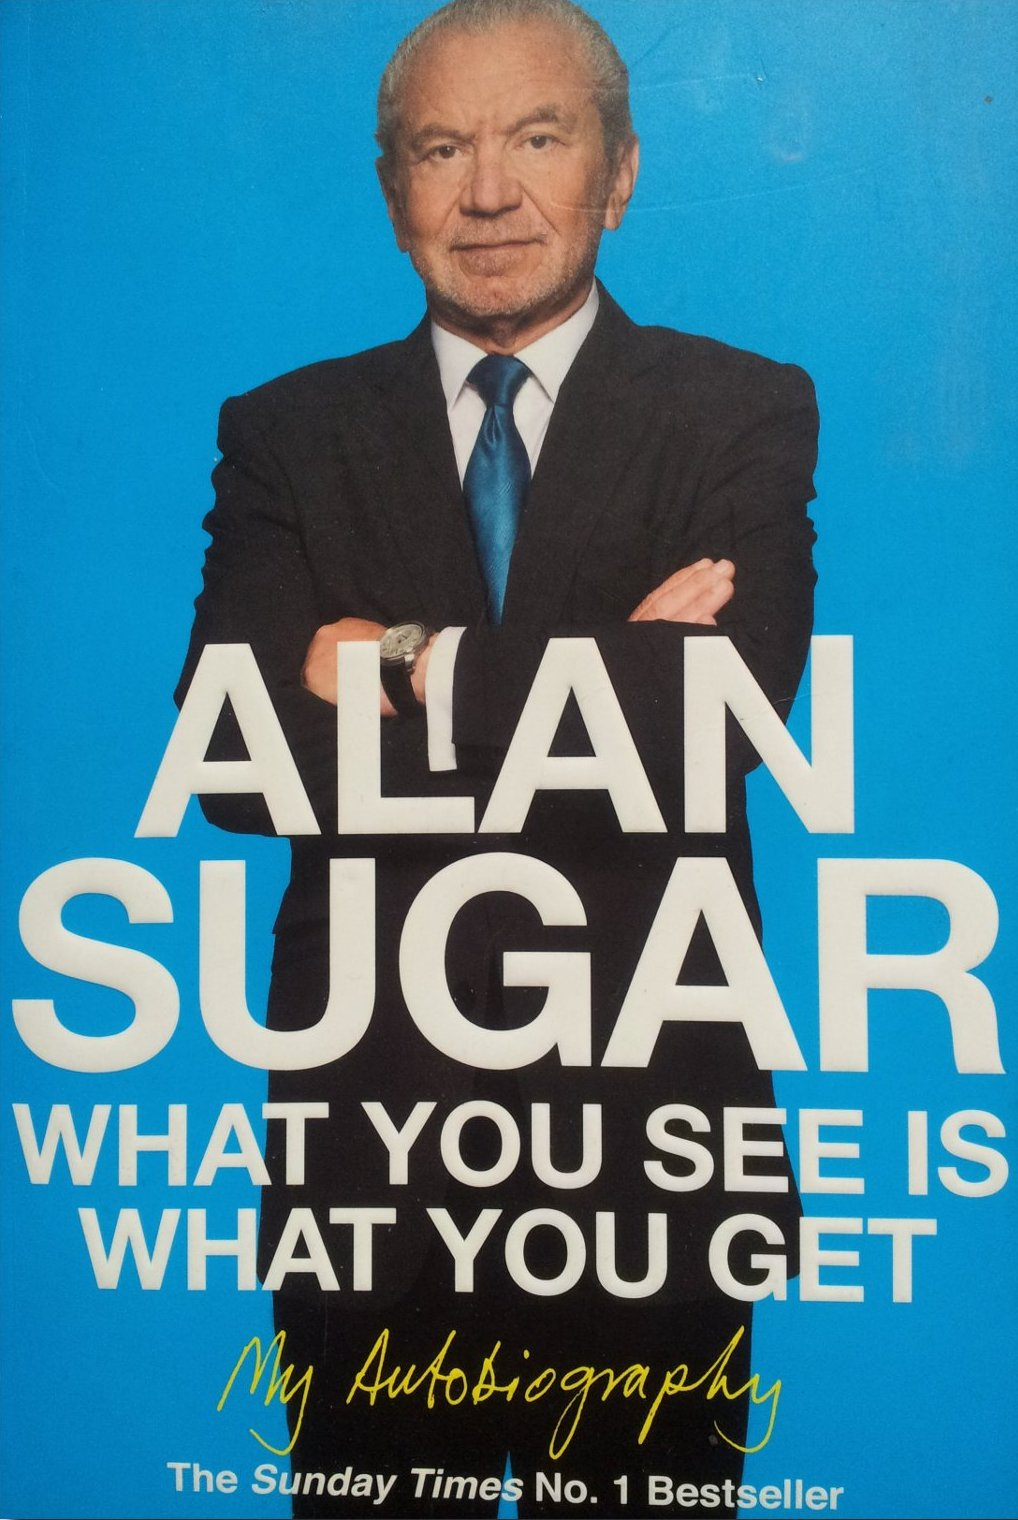 Image of Alan Sugar's autobiography book 'What you see is what you get'